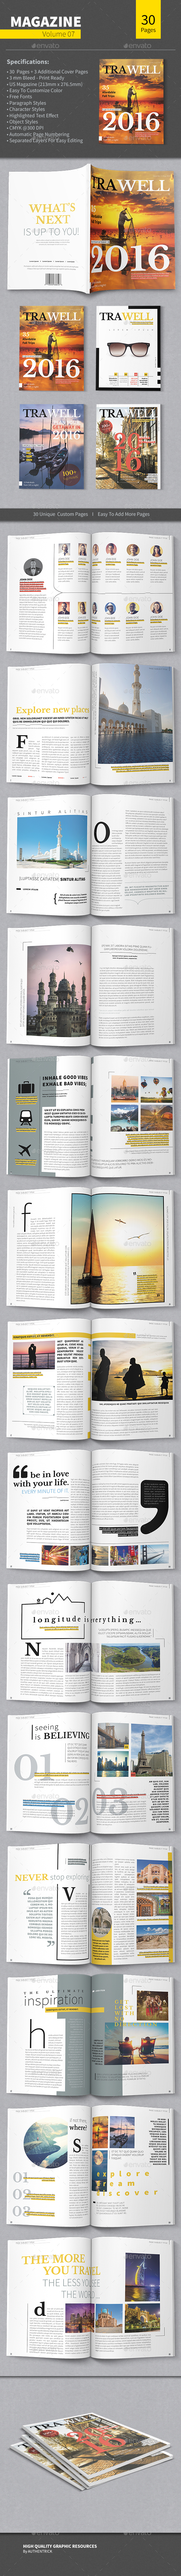 Magazine Template - Volume 07 - Magazines Print Templates